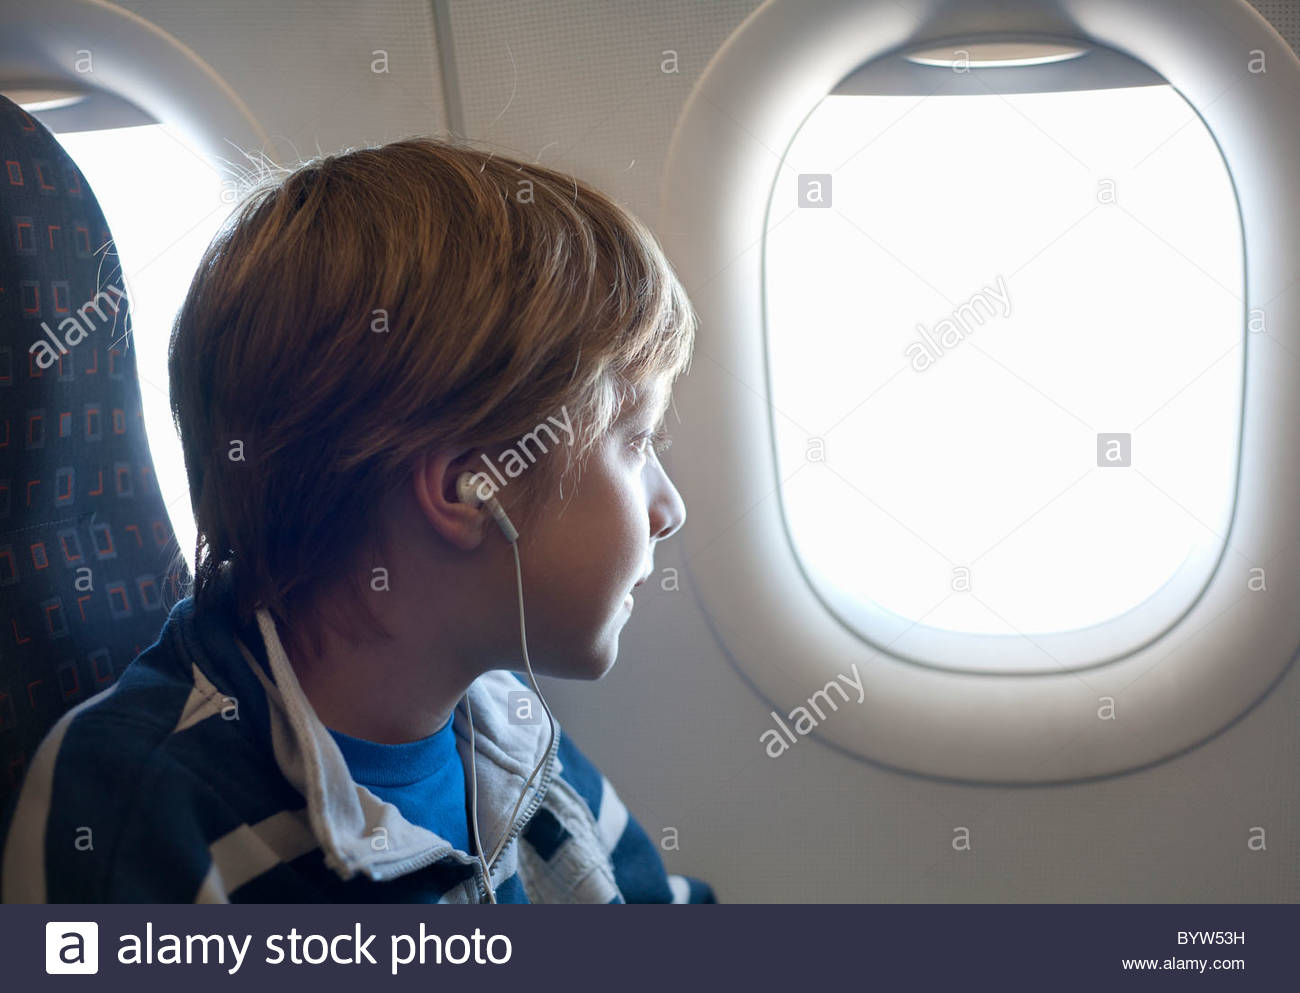 Boy on airplane looking out of window - Stock Image